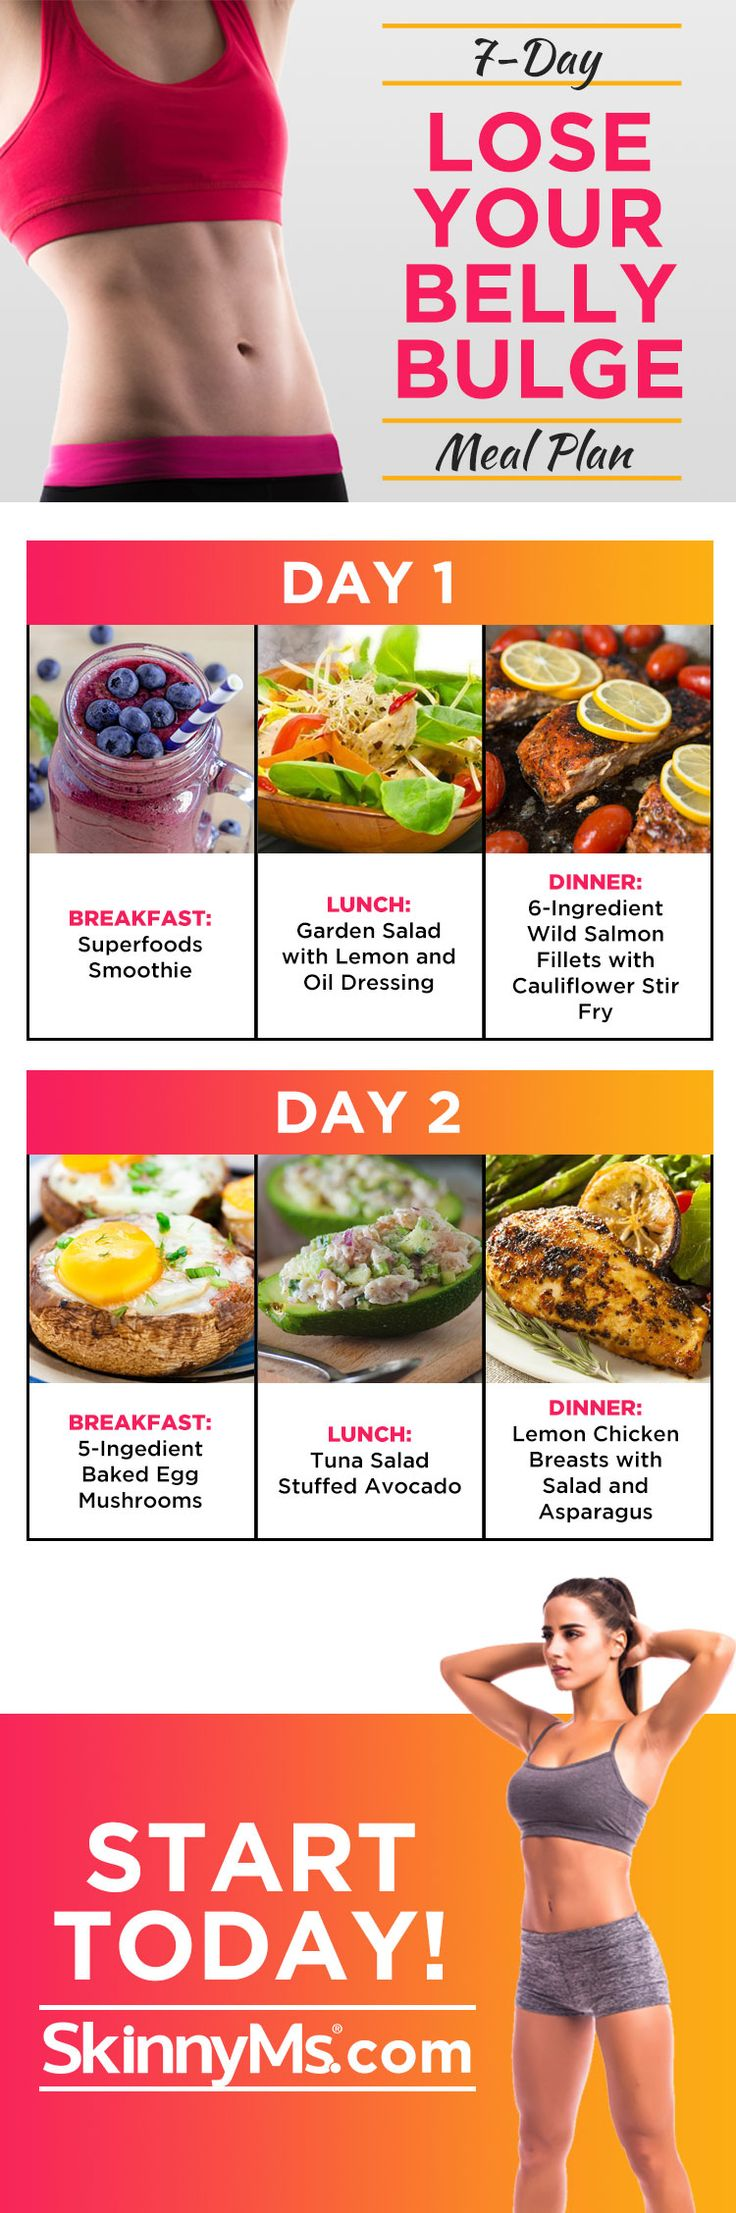 Lose Your Belly Fat 7-Day Meal Plan! #cleaneating #healthyeats #skinnyms